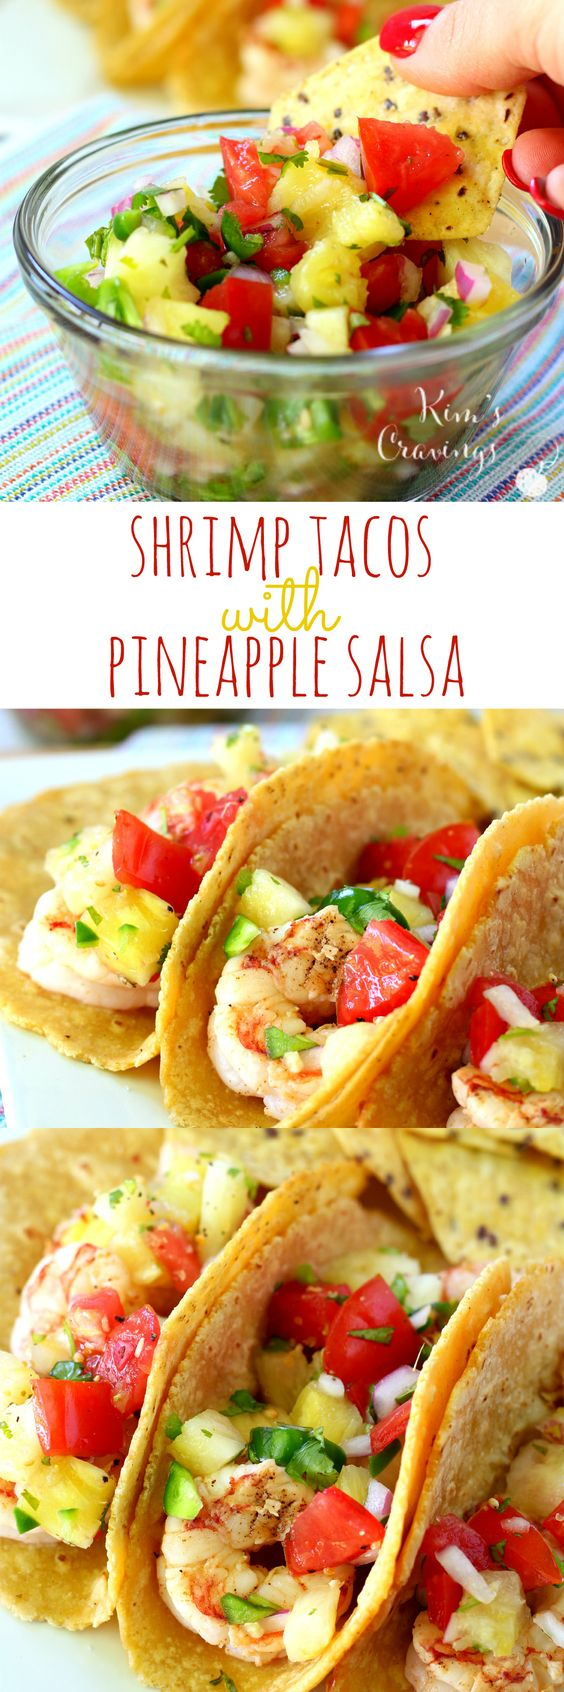 ... Shrimp Tacos with Pineapple Salsa | Recipe | Tacos, Peach salsa and